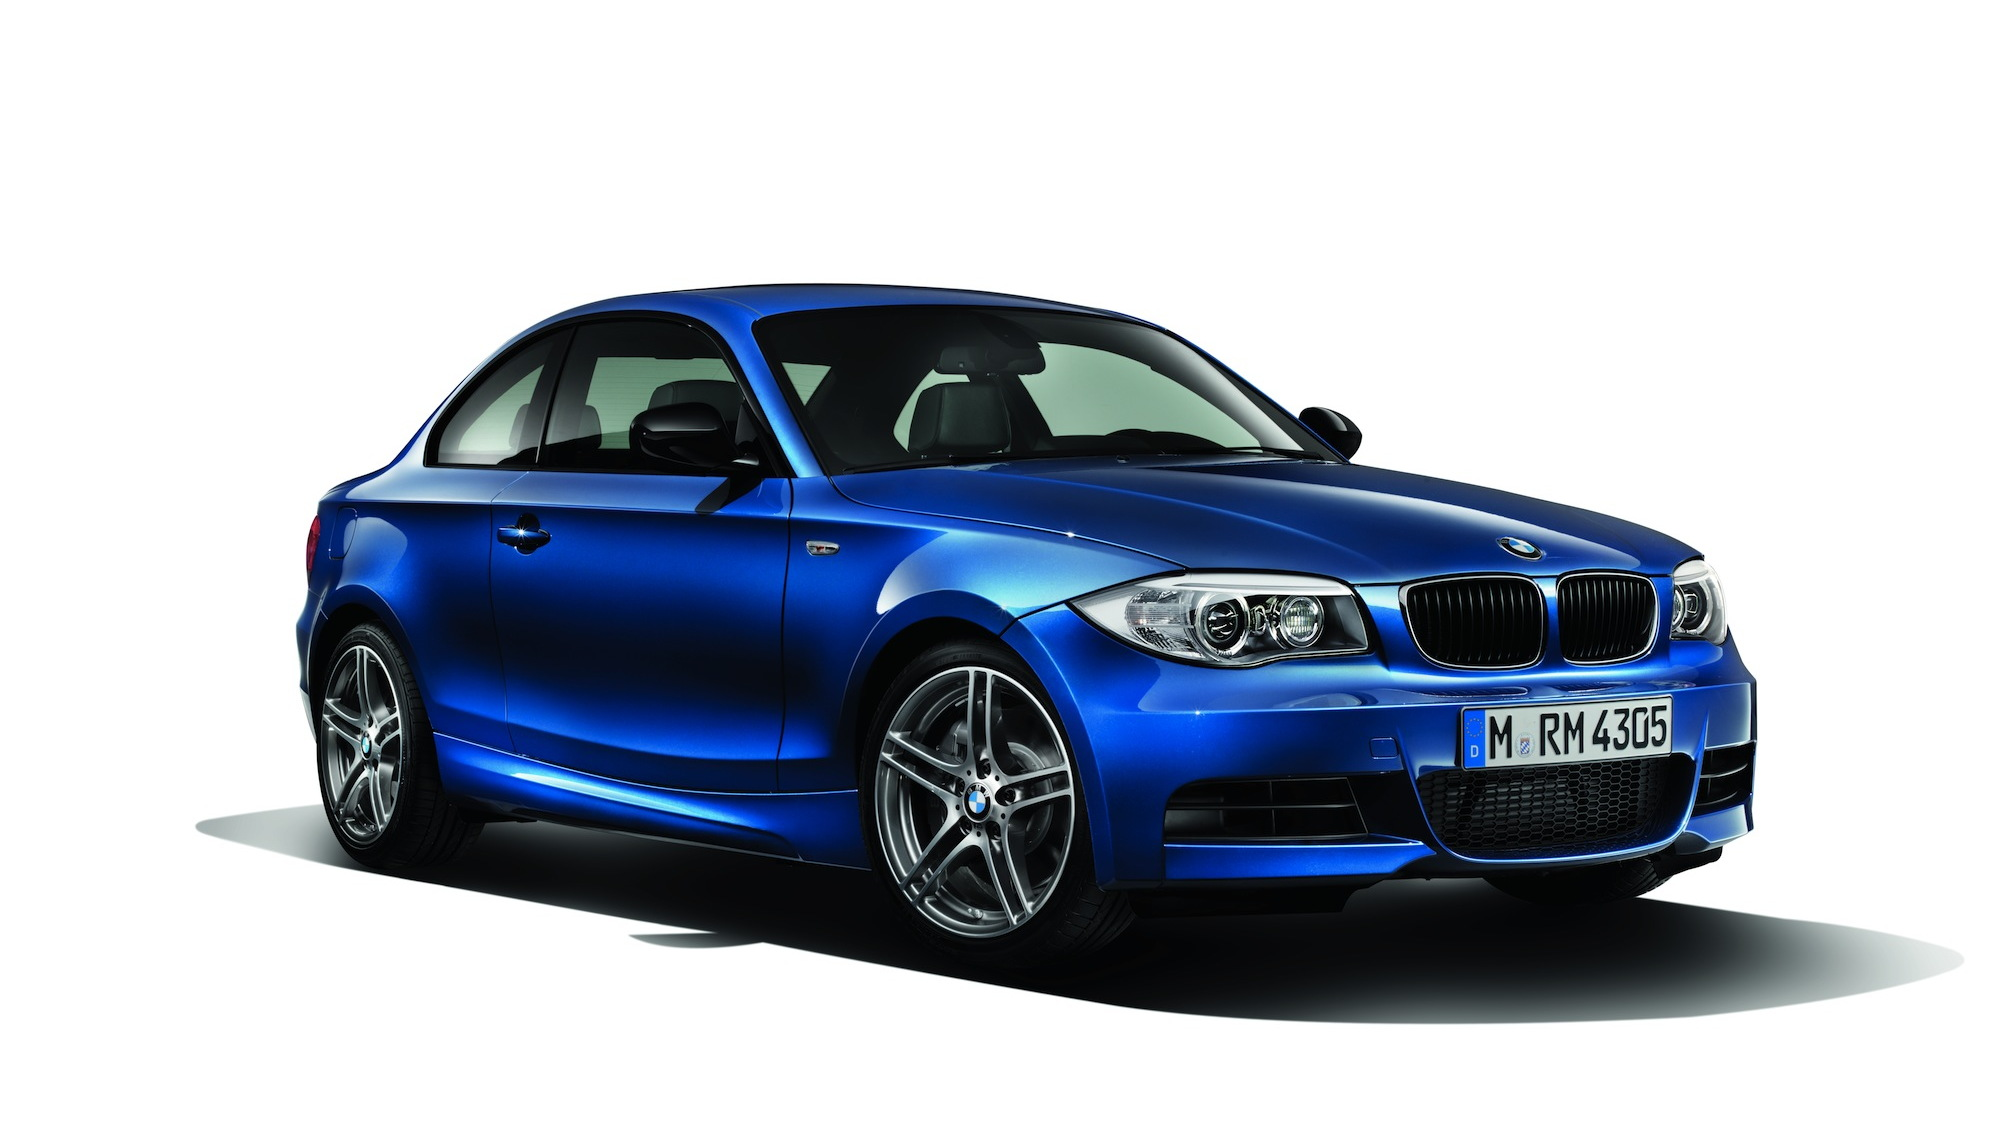 2013 BMW 135is